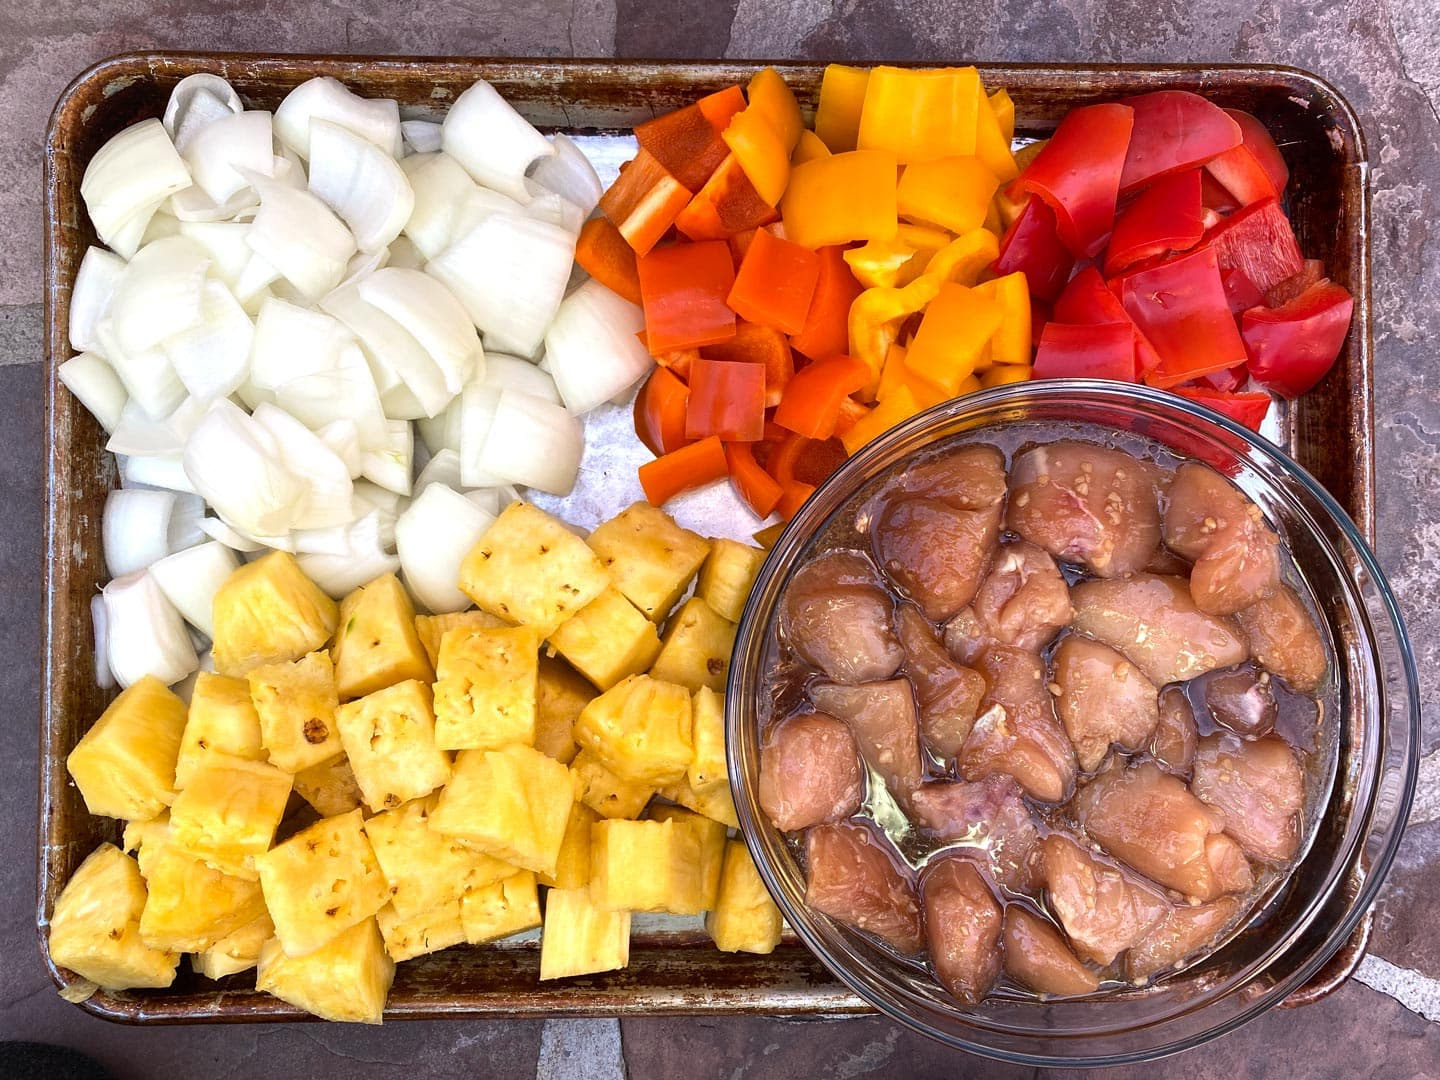 Ingredients for Grilled Honey Chicken Kabobs